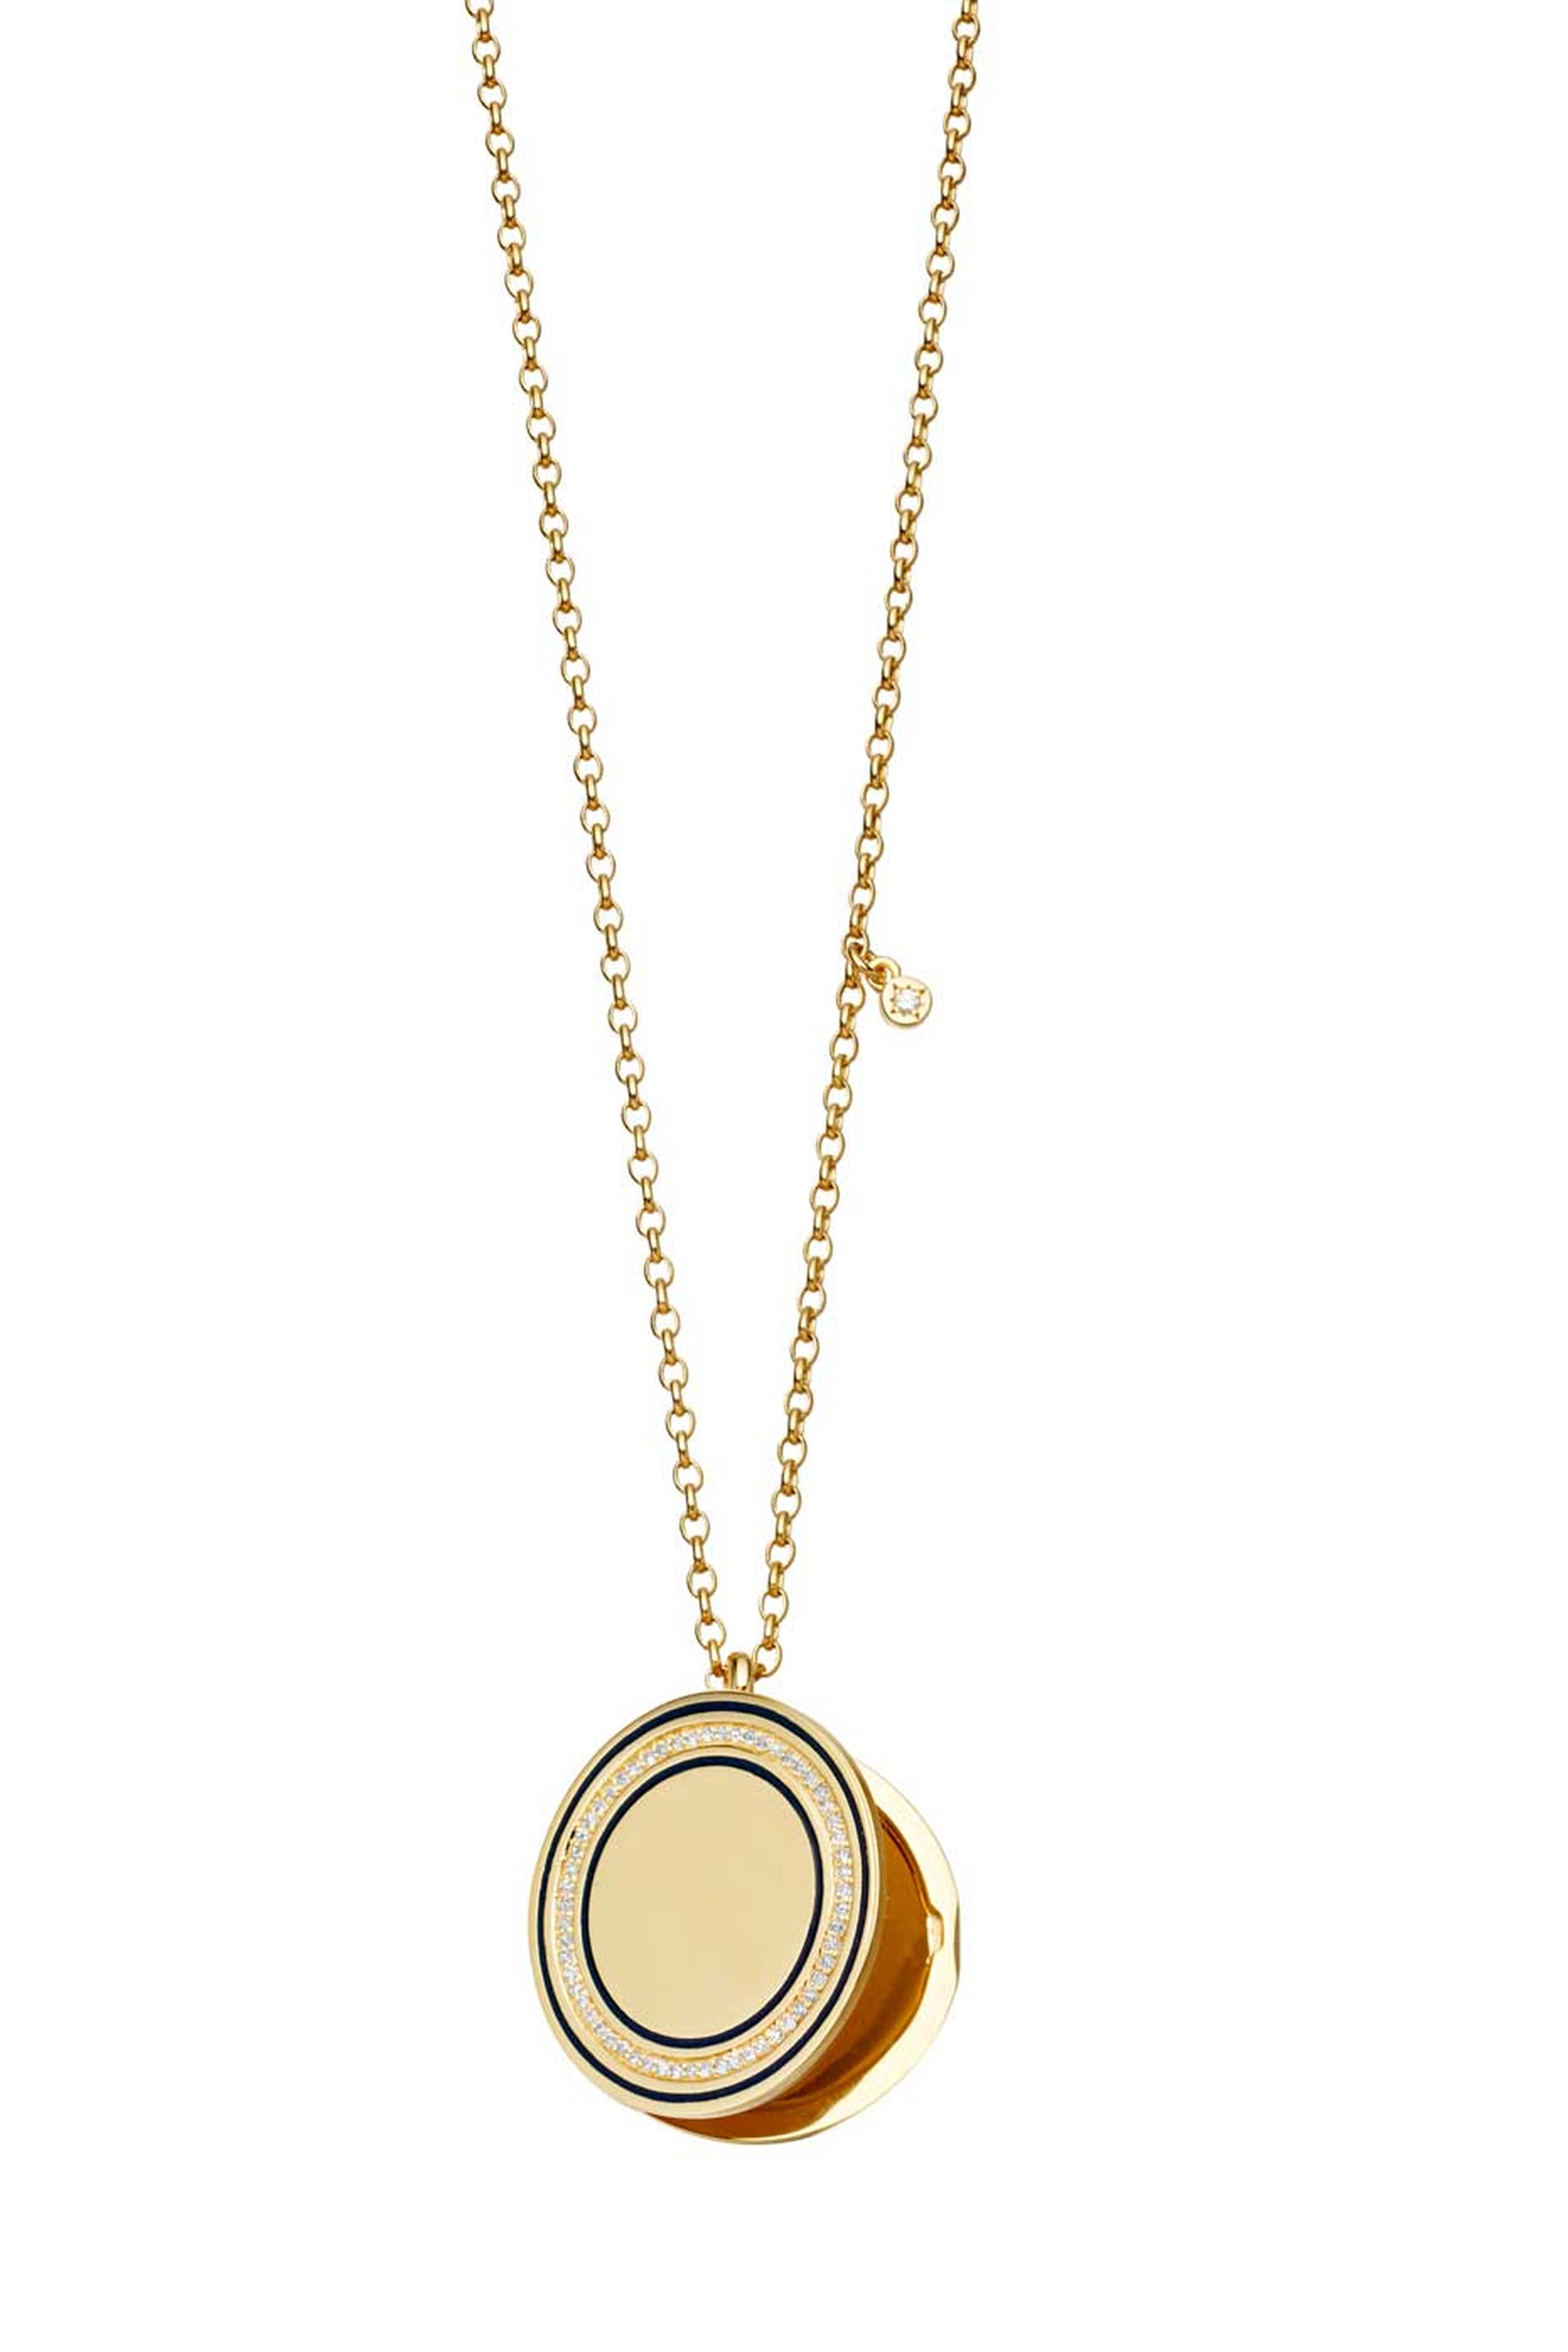 Astley Clarke Giant Midnight Cosmos locket in yellow gold with diamonds (£1,950).